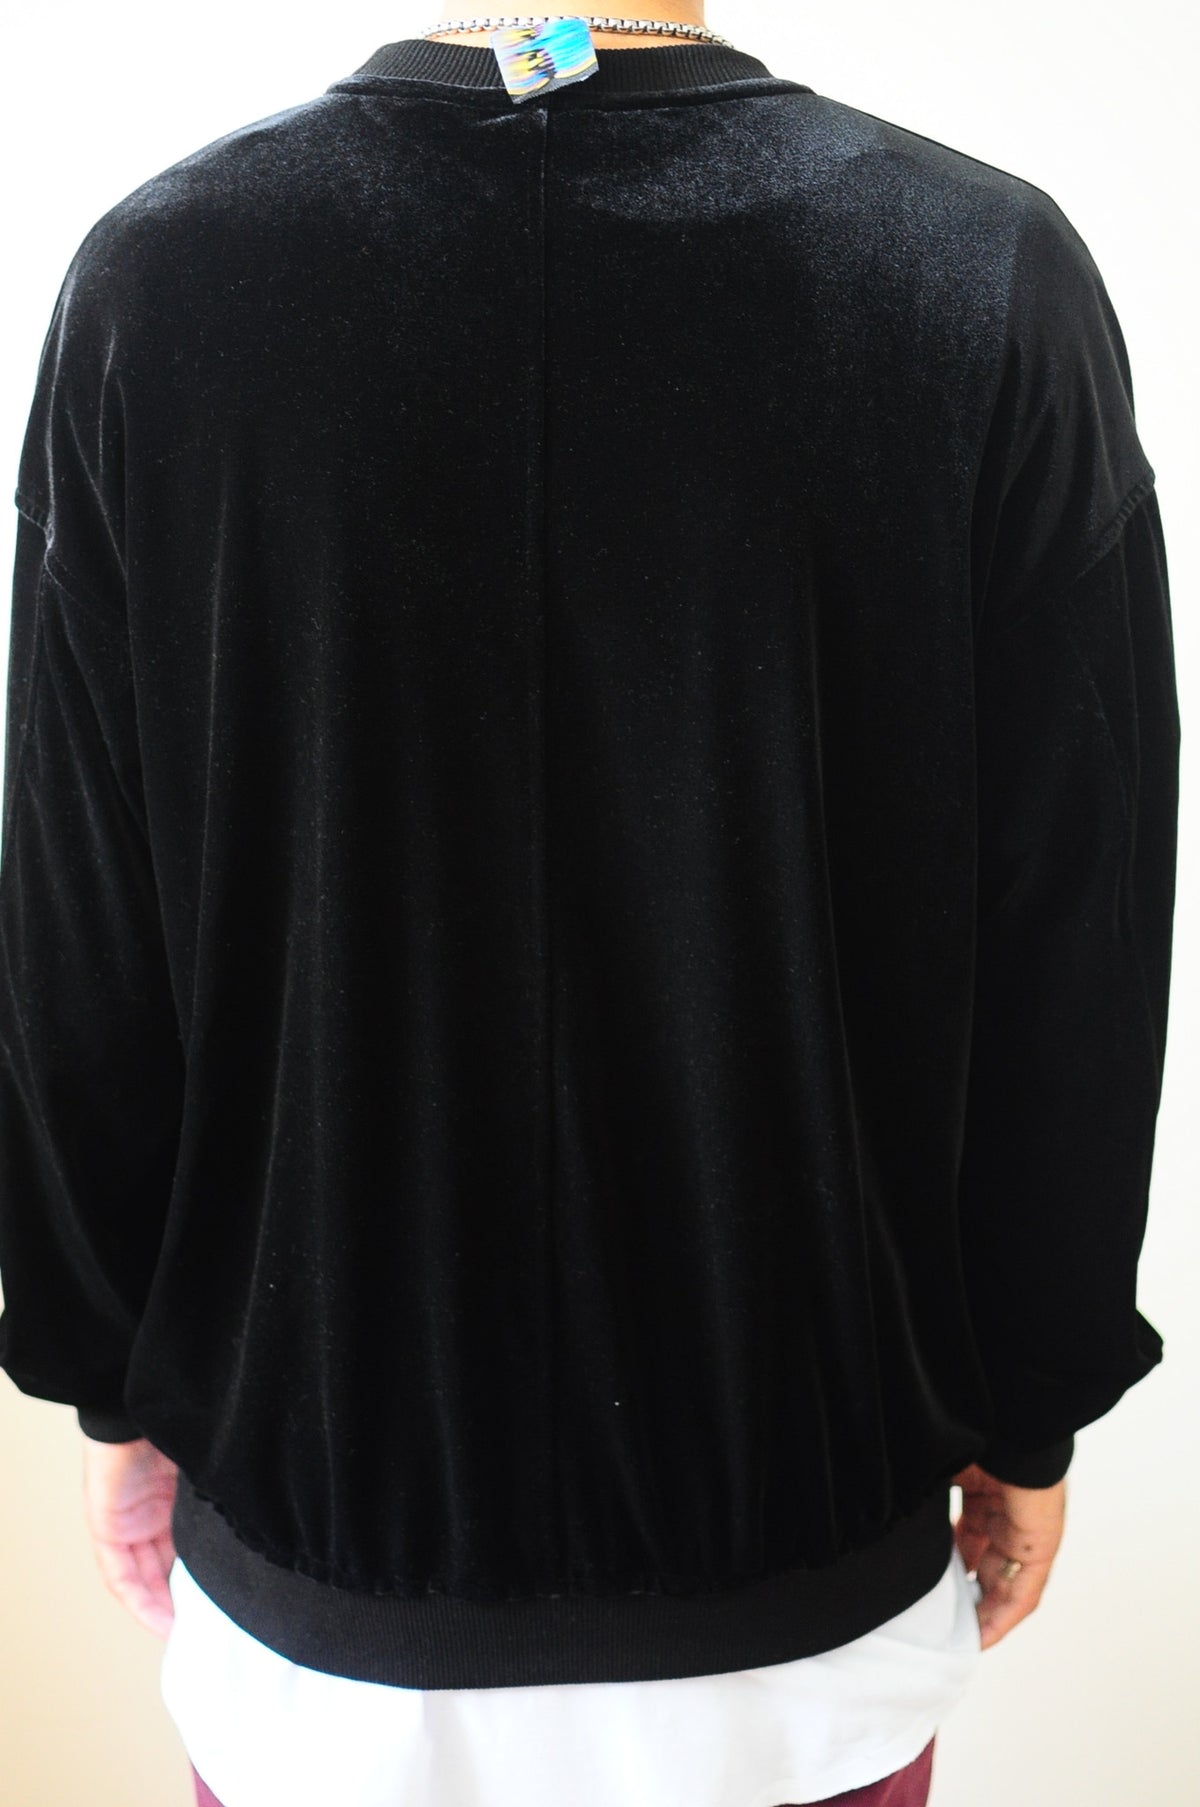 Velvet Vantablack Raw Edge Velvet 80's Sweater Oversized Fit Dropped Shoulder / Rear Neck Badge